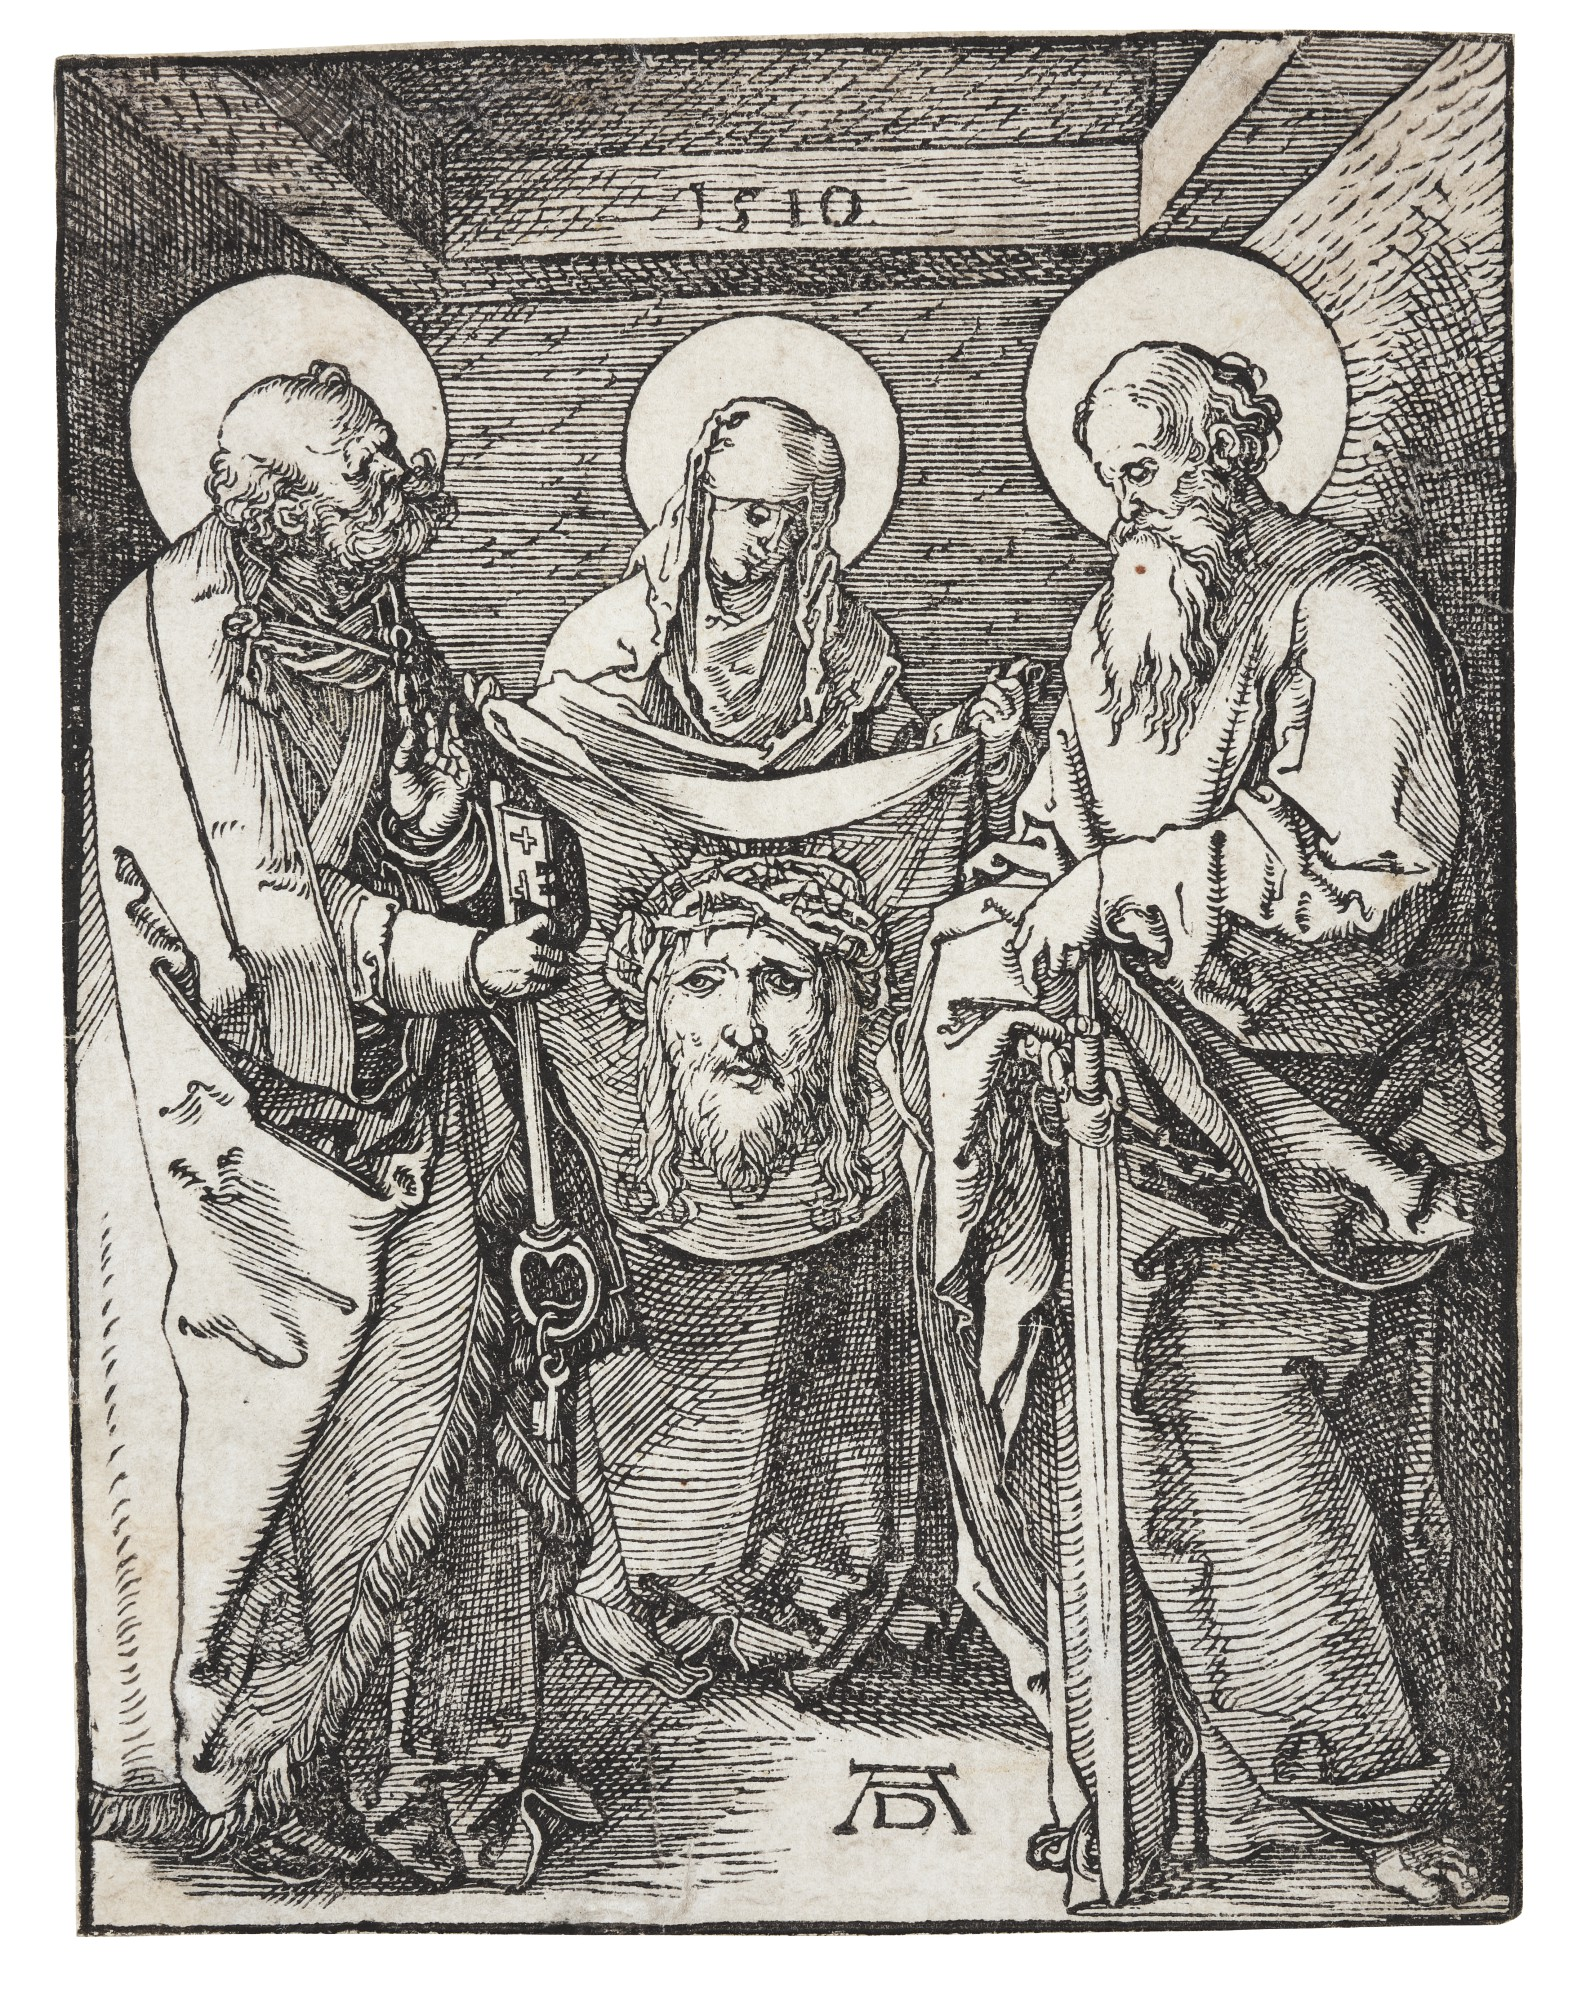 ALBRECHT DÜRER | ST. VERONICA BETWEEN ST. PETER AND ST. PAUL; AND CHRIST IN EMMAUS (B. 38, 48; M., HOLL. 147, 157)